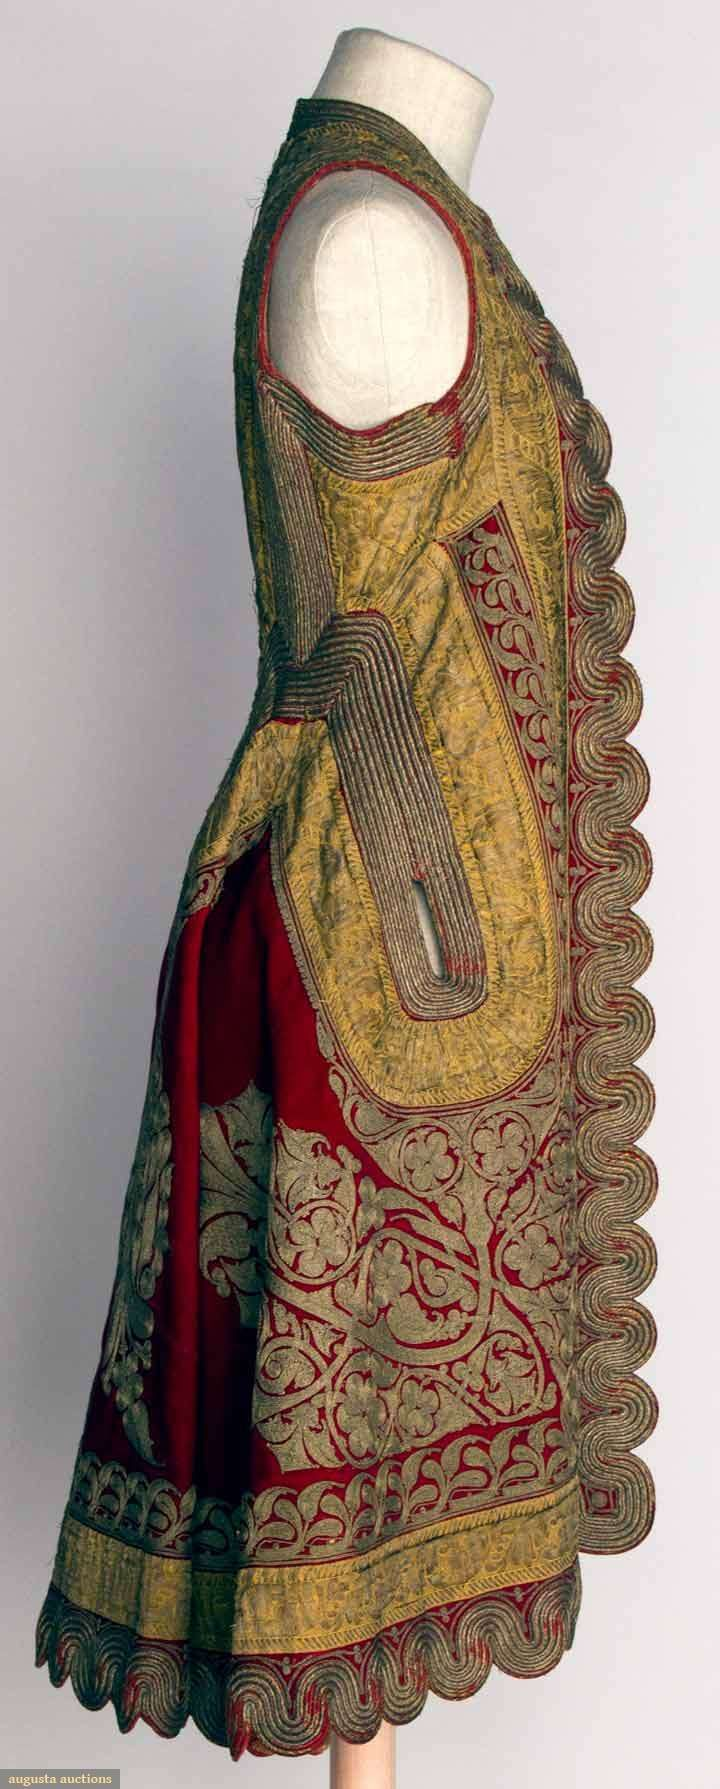 WOMAN'S SLEEVELESS COAT, ALBANIA, 19TH C Red wool w/ elaborate gold metallic embroidery & gilt trim, printed cotton lining